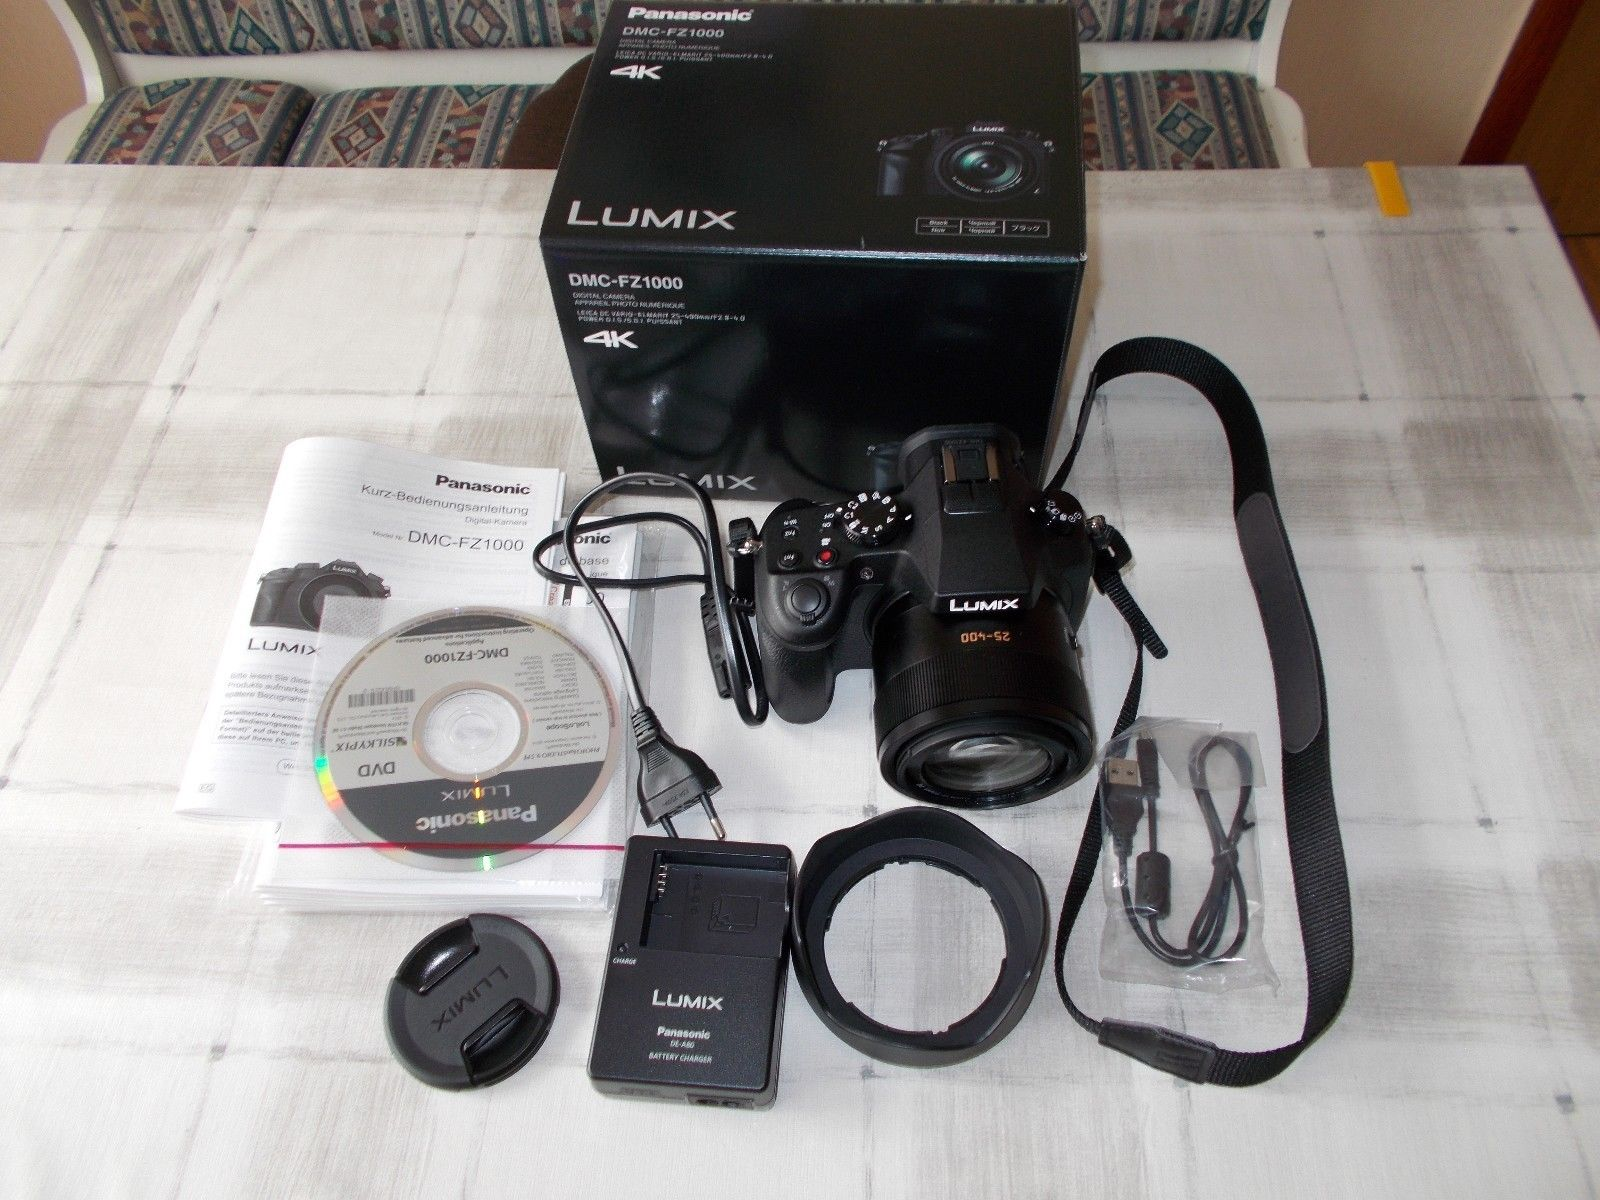 Panasonic LUMIX DMC-FZ1000EG 20.1 MP Digitalkamera - Schwarz wie neu